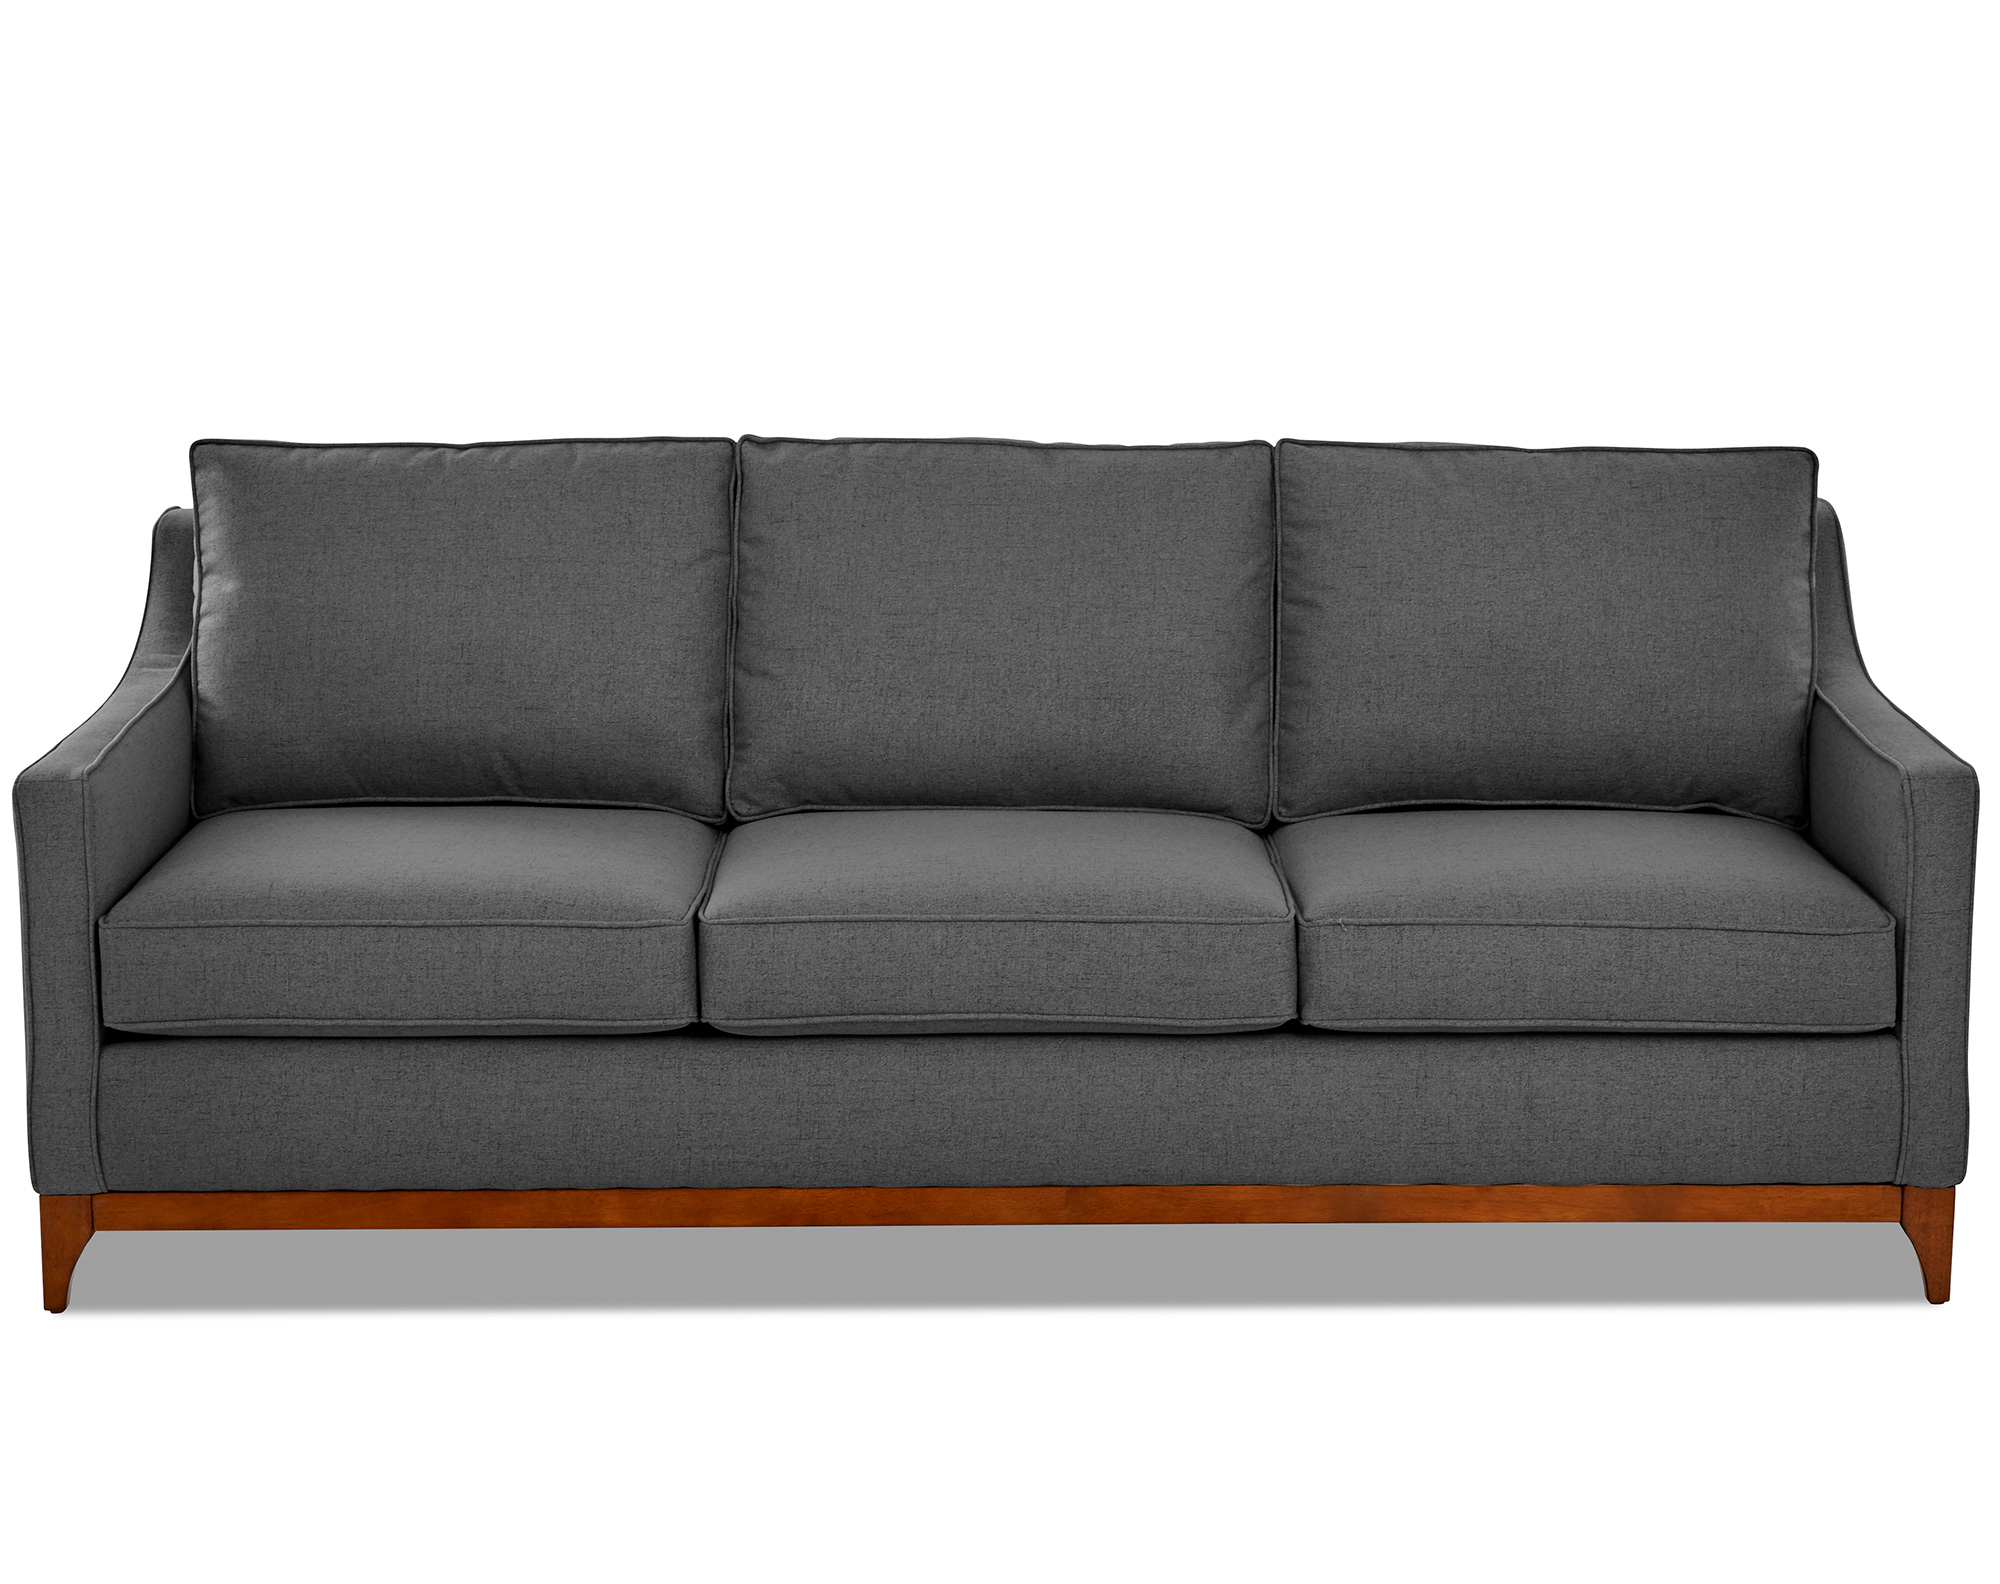 Ansley 86 Fabric Wood Base Sofa 3 Sofas And Sectionals